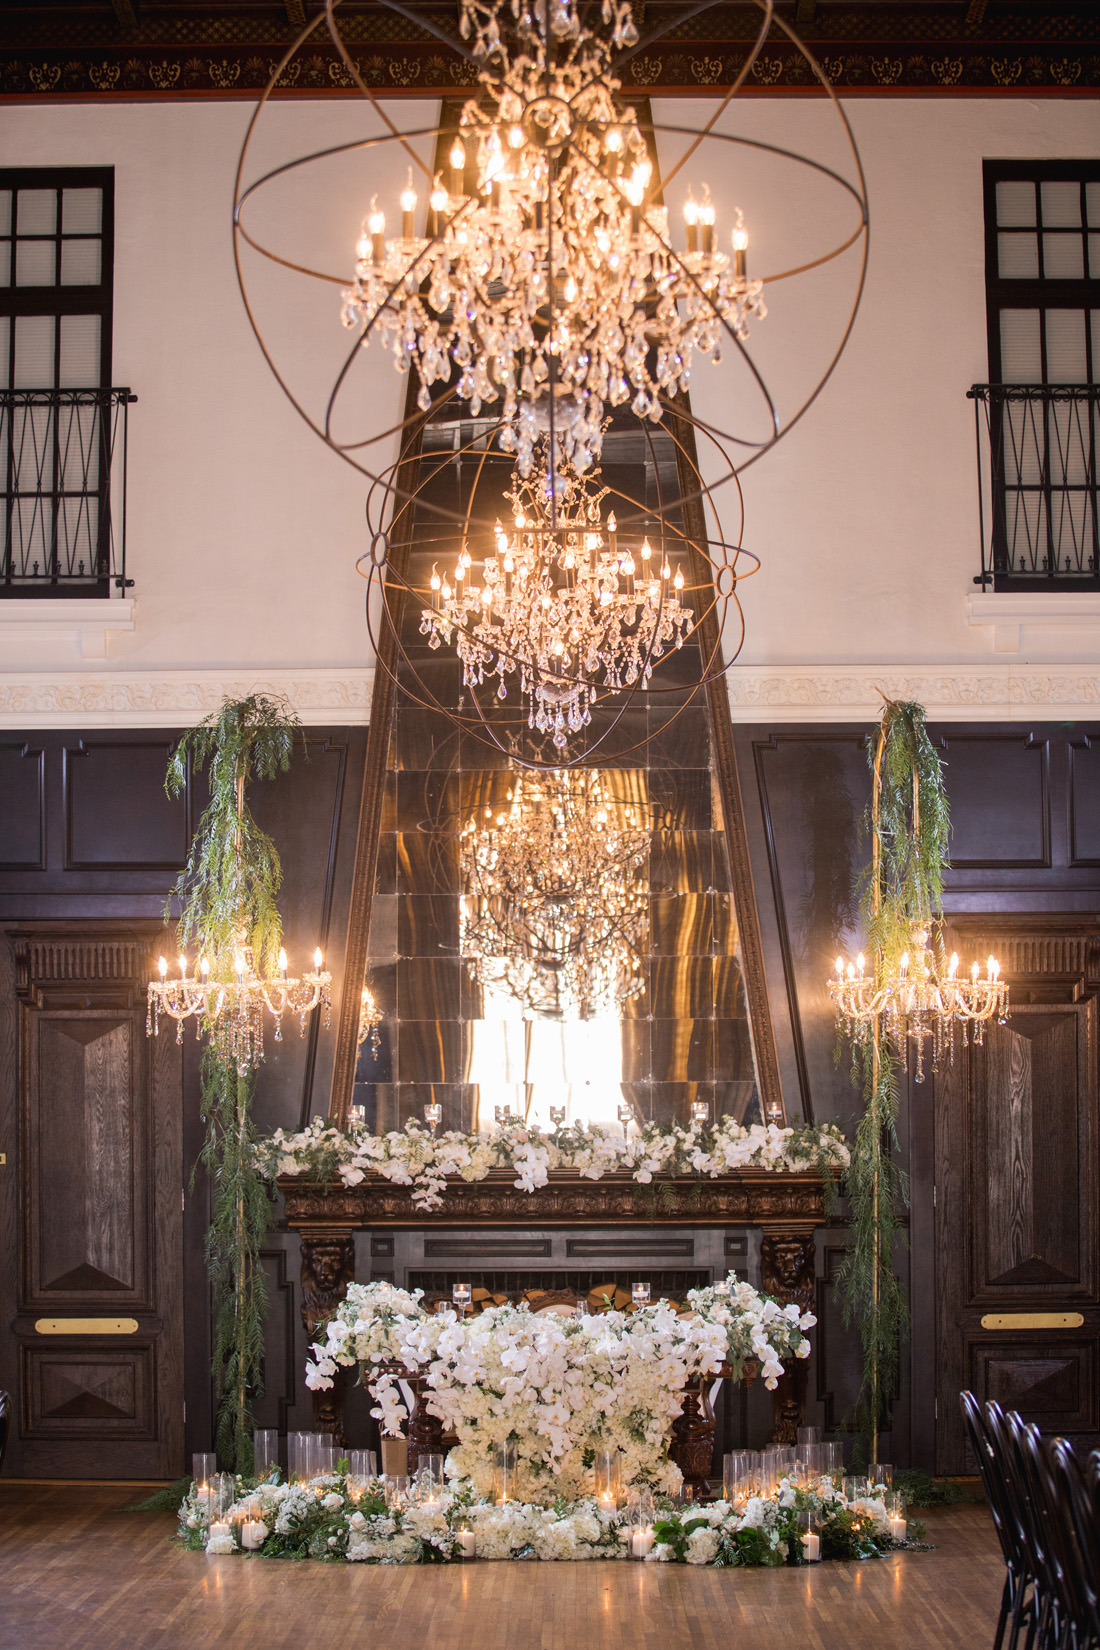 extravagant sweetheart table wedding decoration ideas chandeliers greenery fireplace